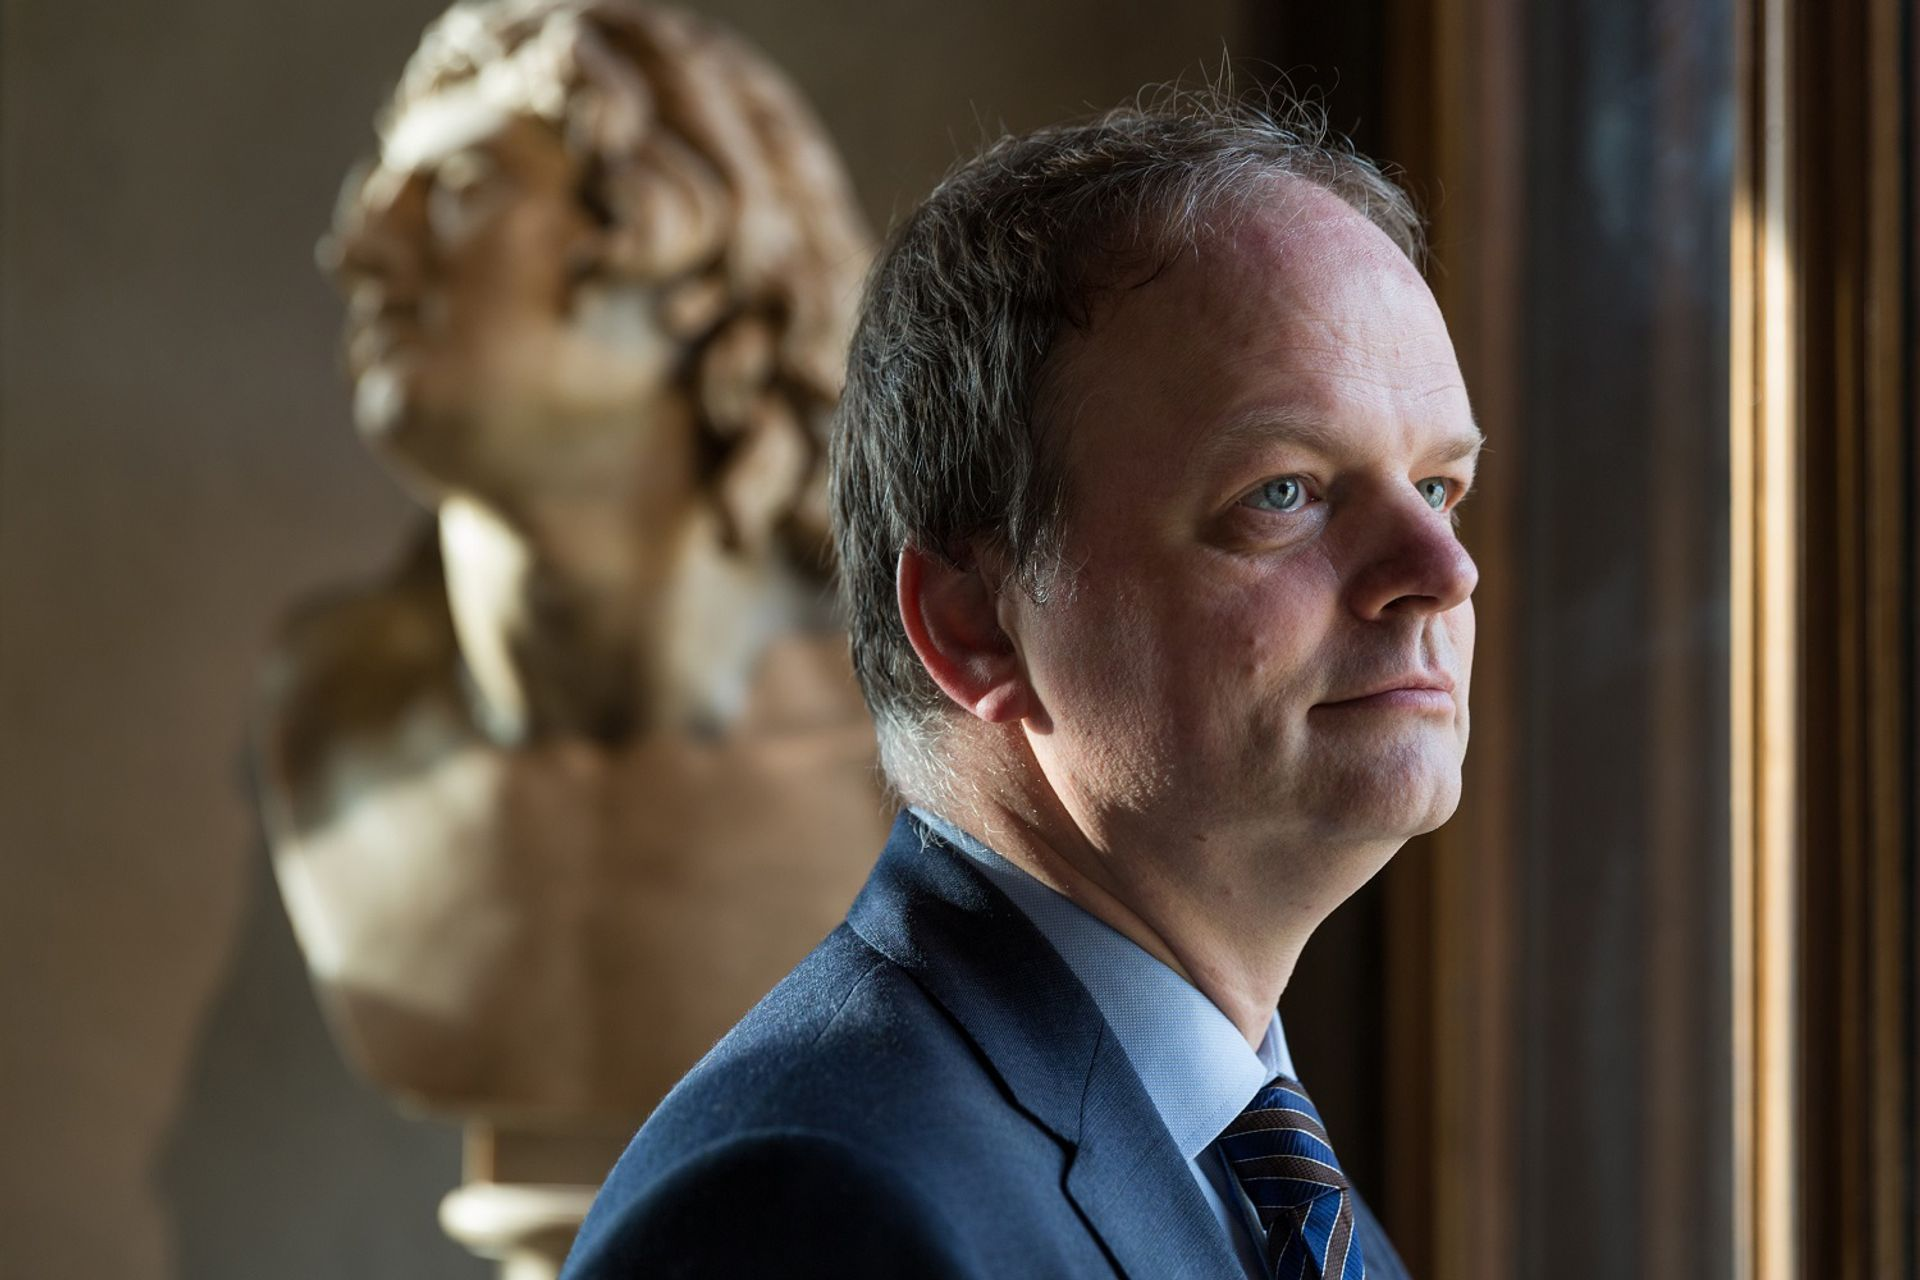 Eike Schmidt was announced in 2017 as the next director of the Kunsthistorisches Museum in Vienna © Alessandro Moggi